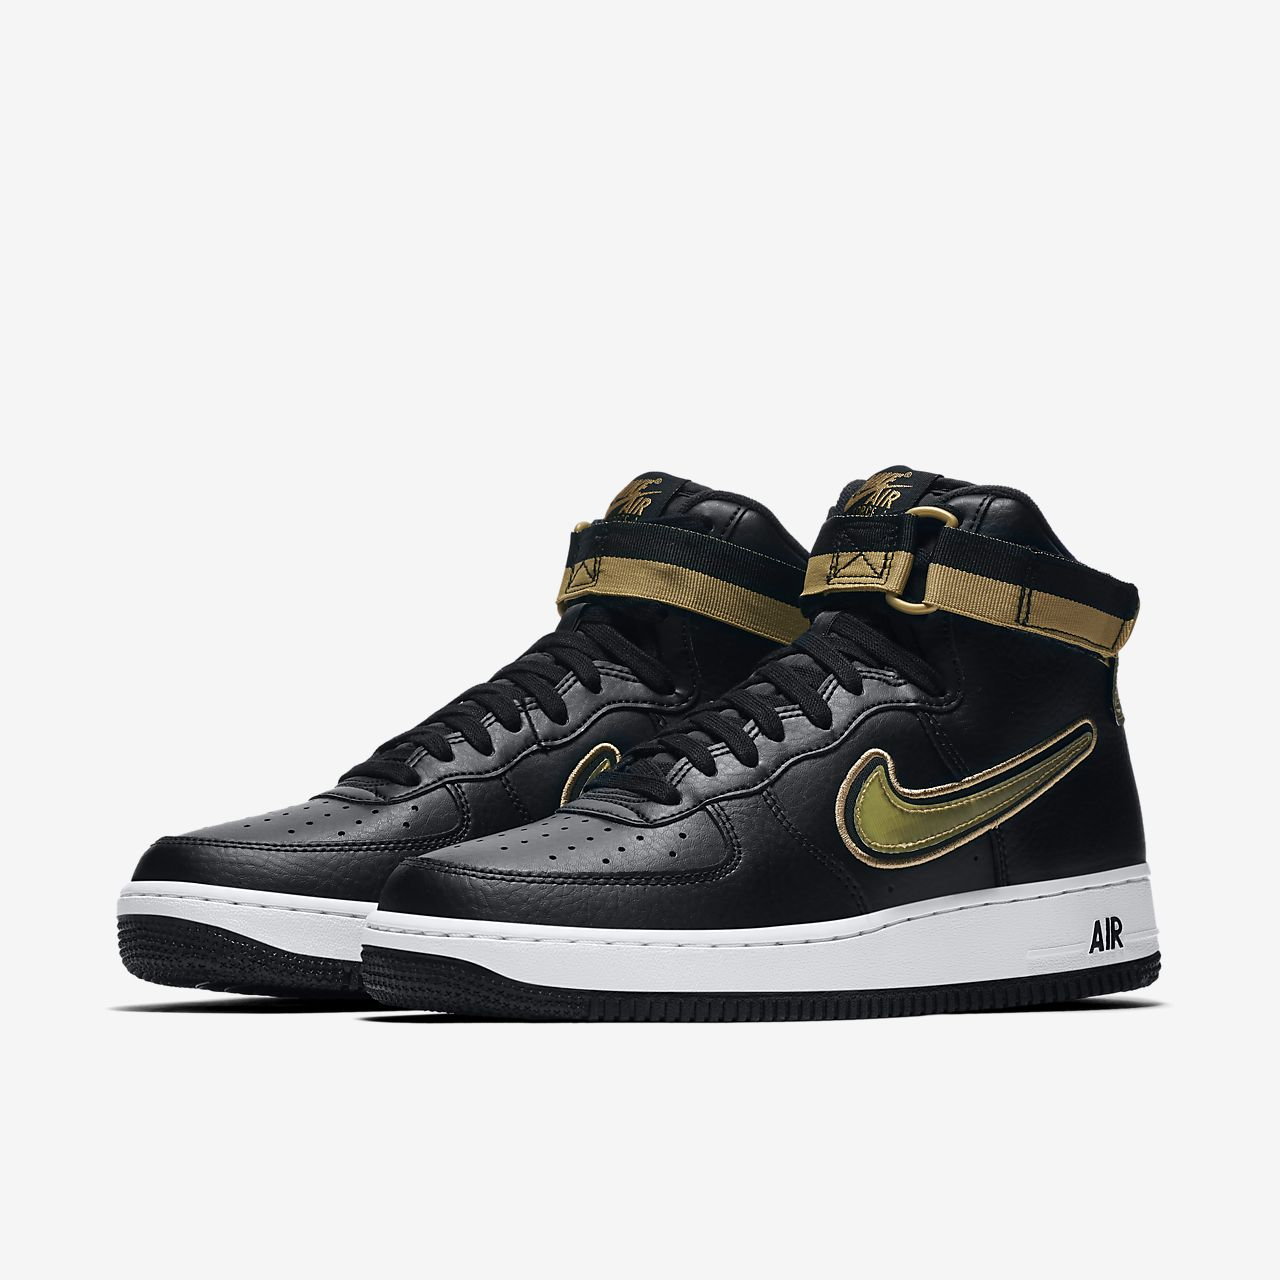 Chaussure Nike Air Lv8 High '07 Sport Pour Homme Force 1 Nba v8n0OPymNw